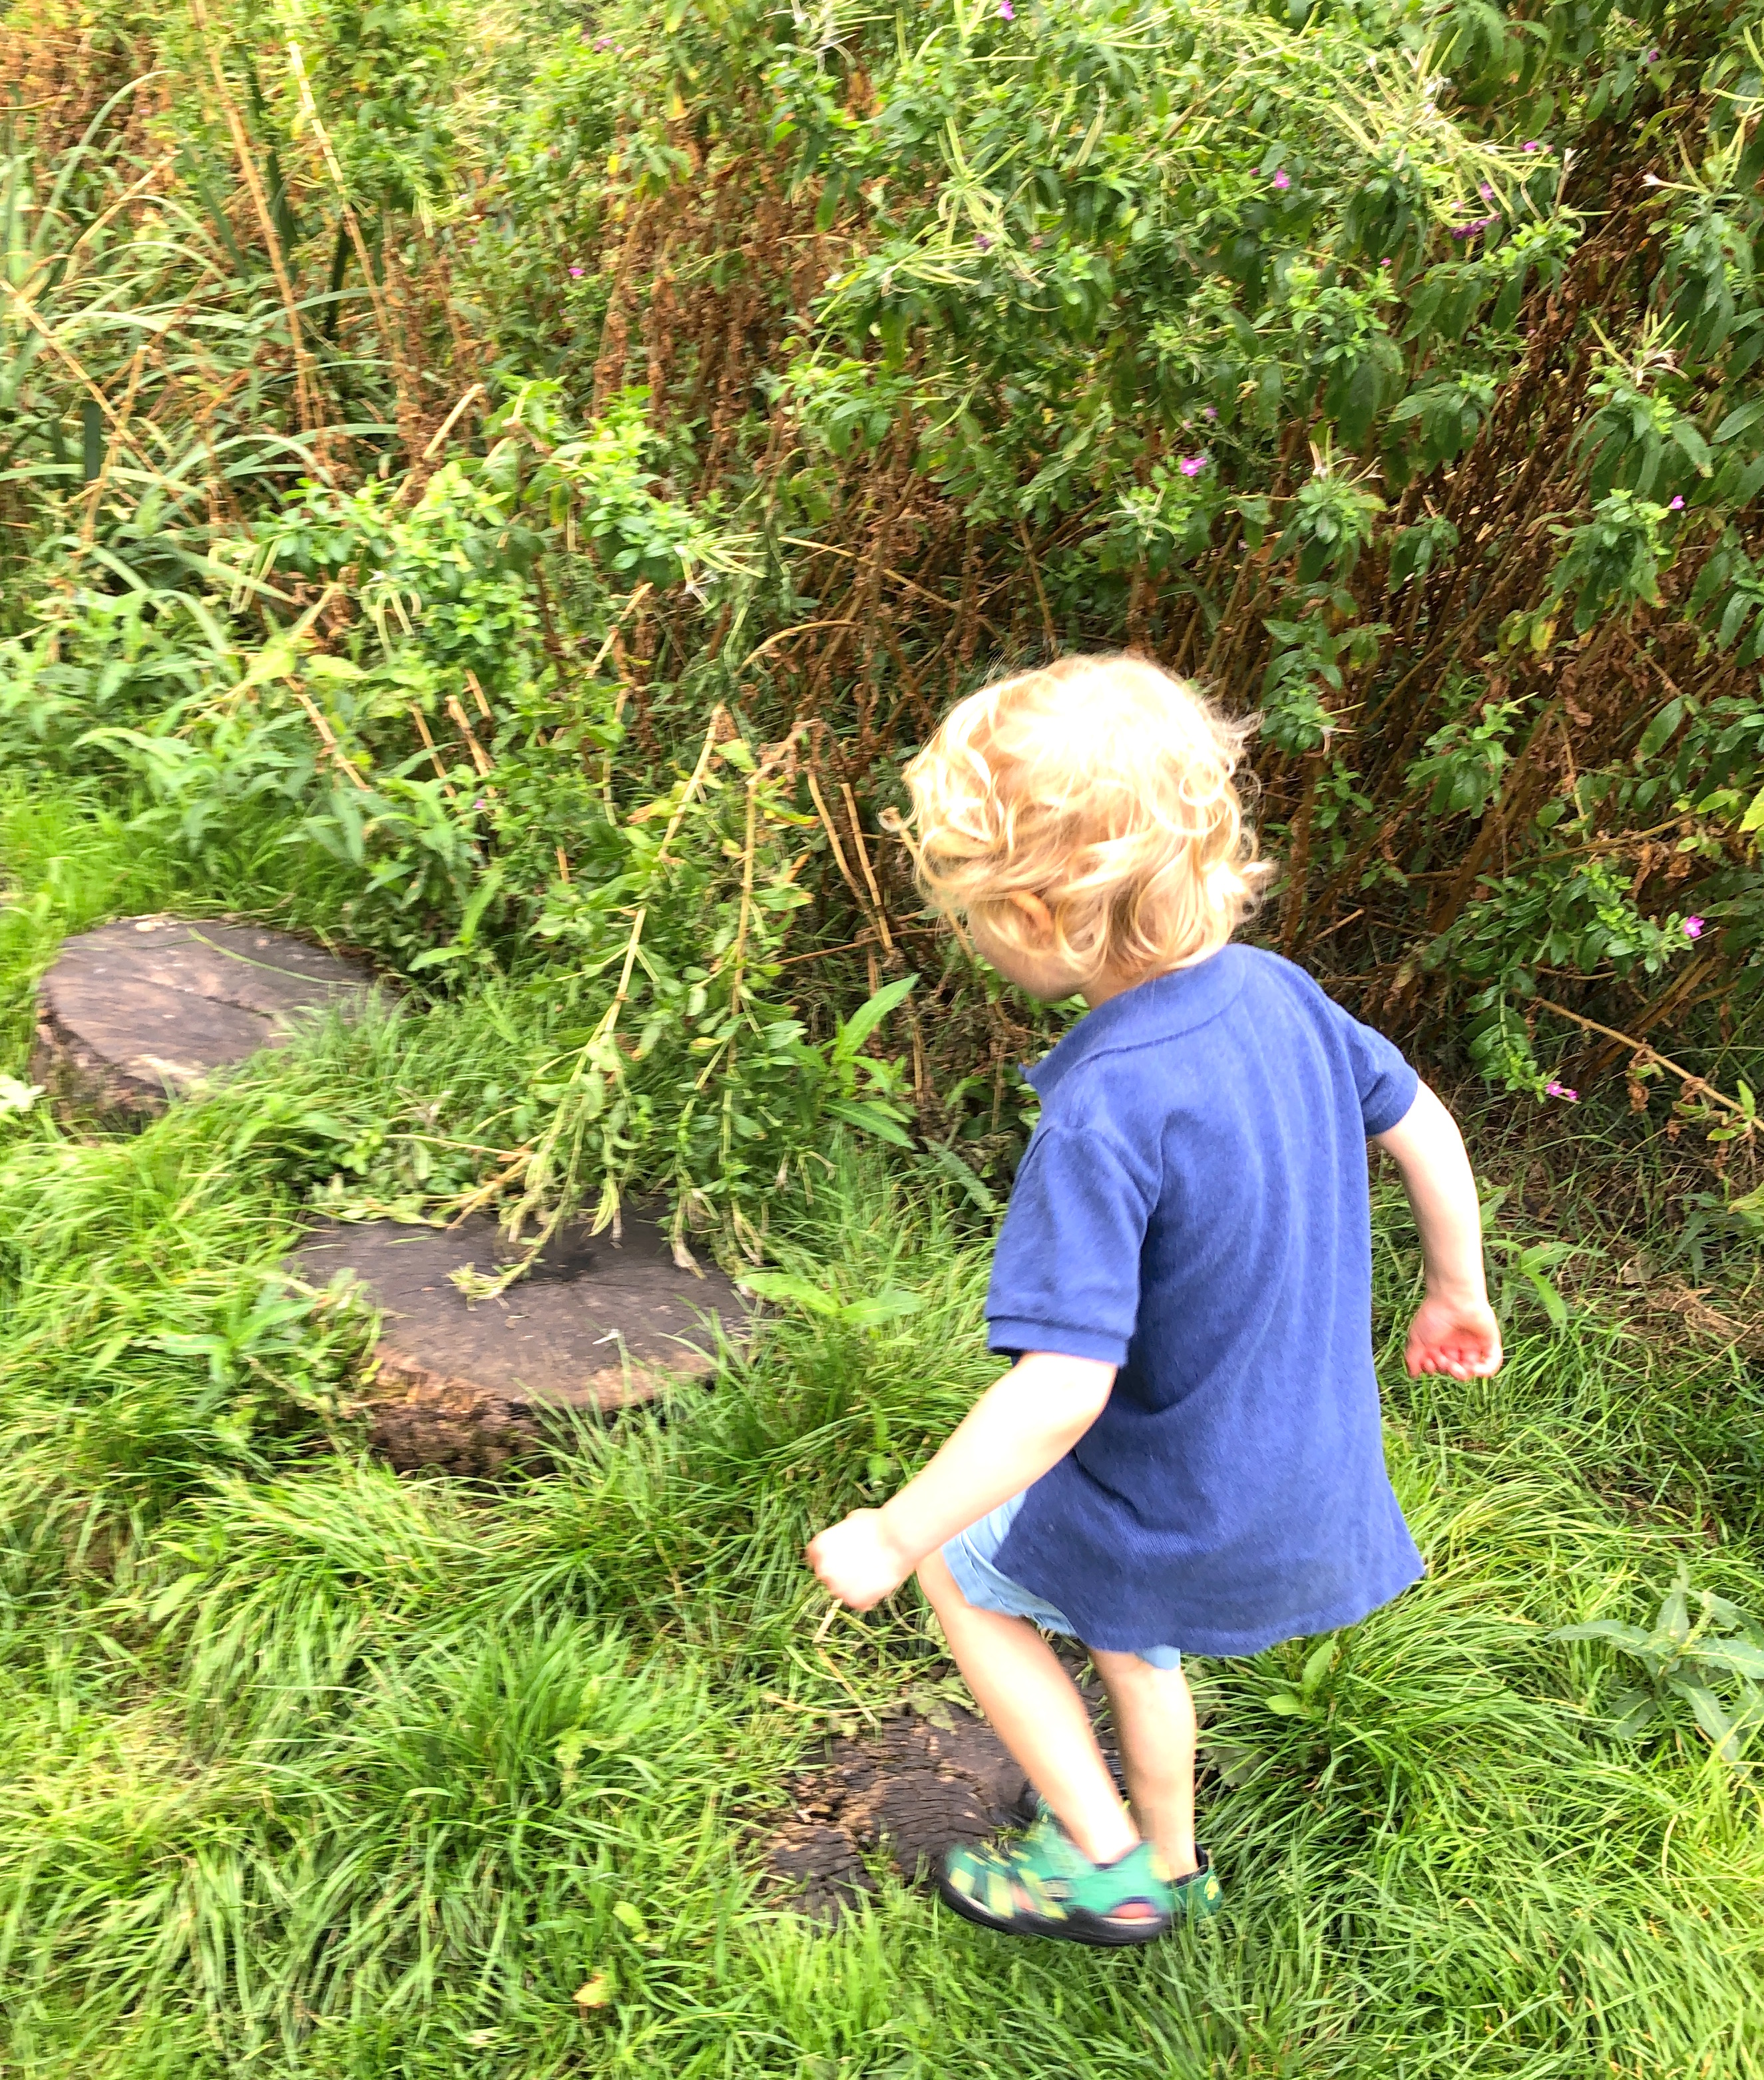 counting steps in eyfs and preschool. nature trails